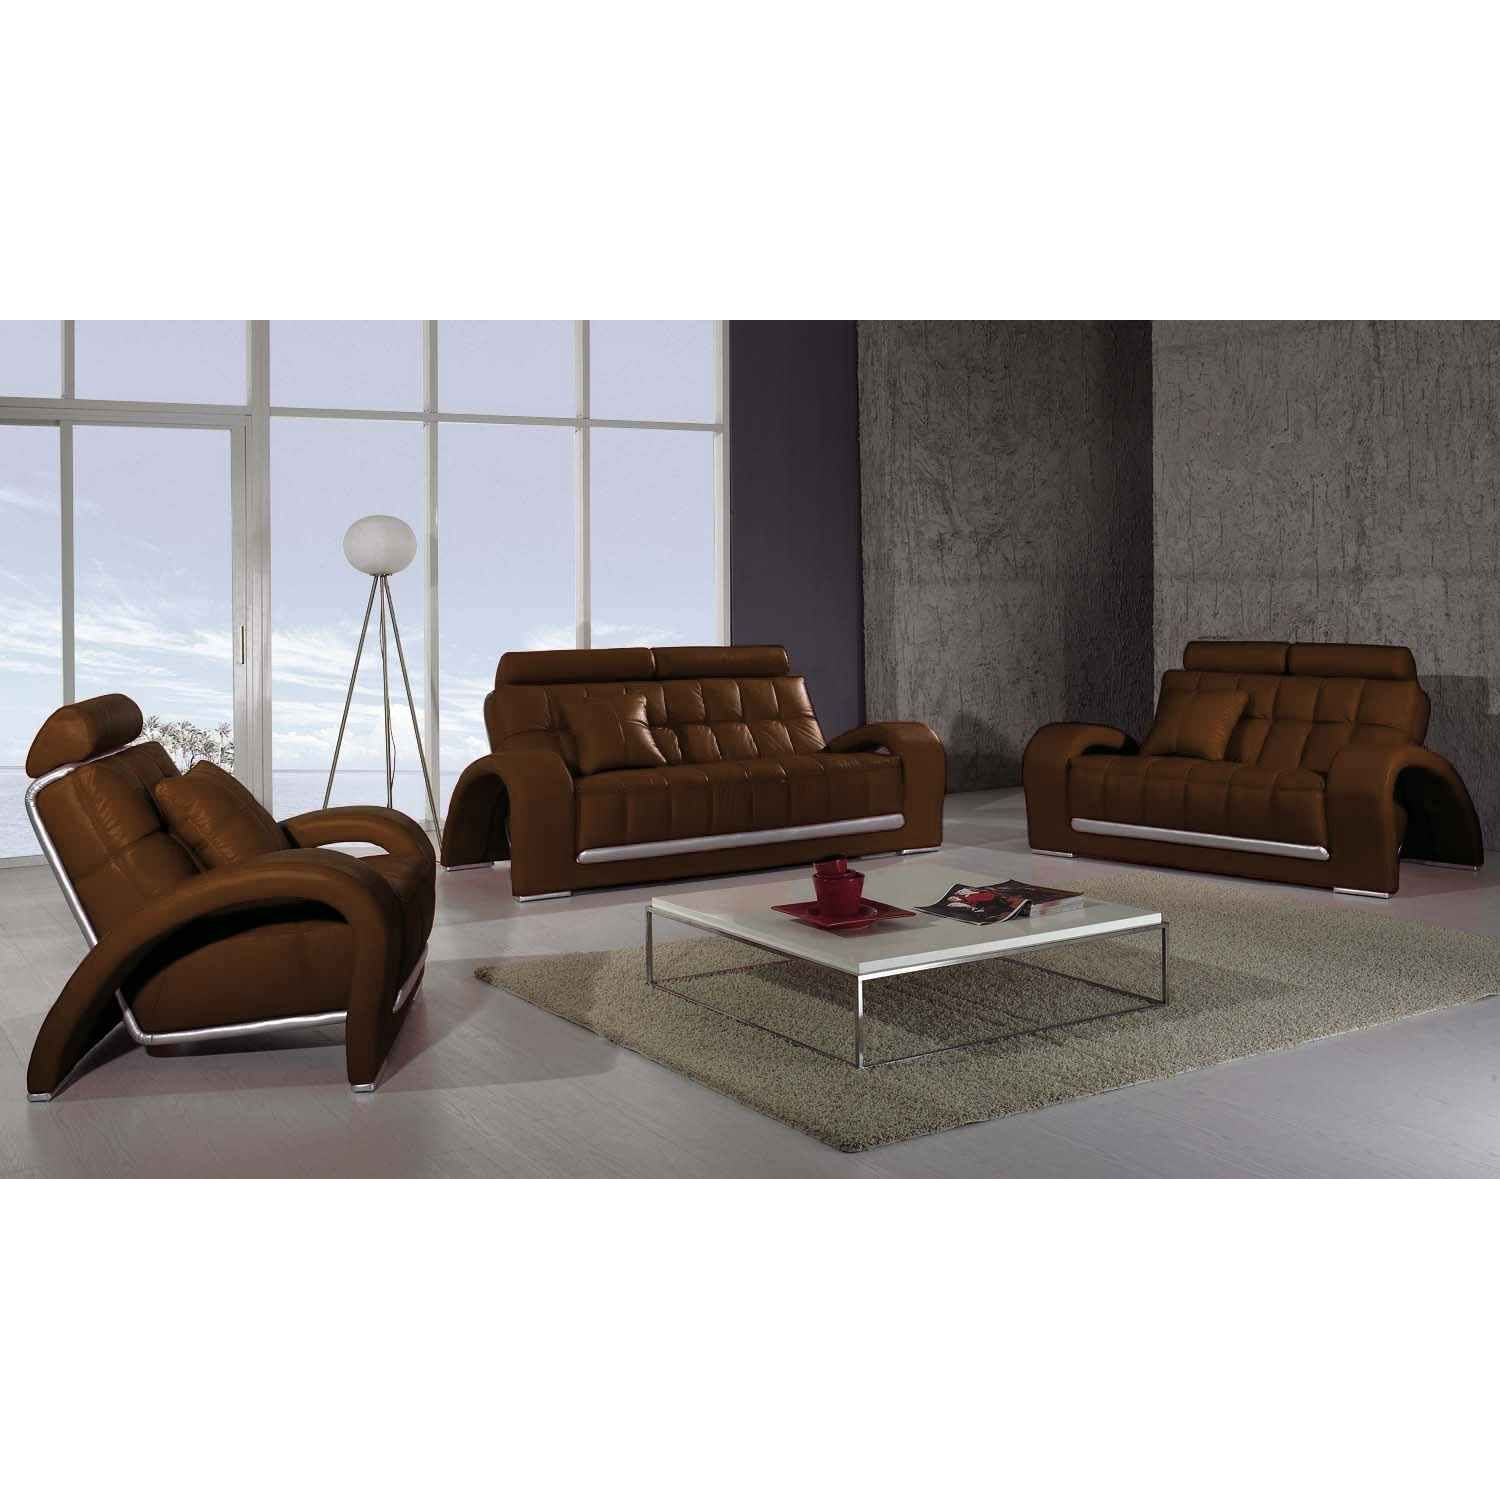 deco in paris canape cuir marron 2 places verdi can verdi 2p pu marron. Black Bedroom Furniture Sets. Home Design Ideas